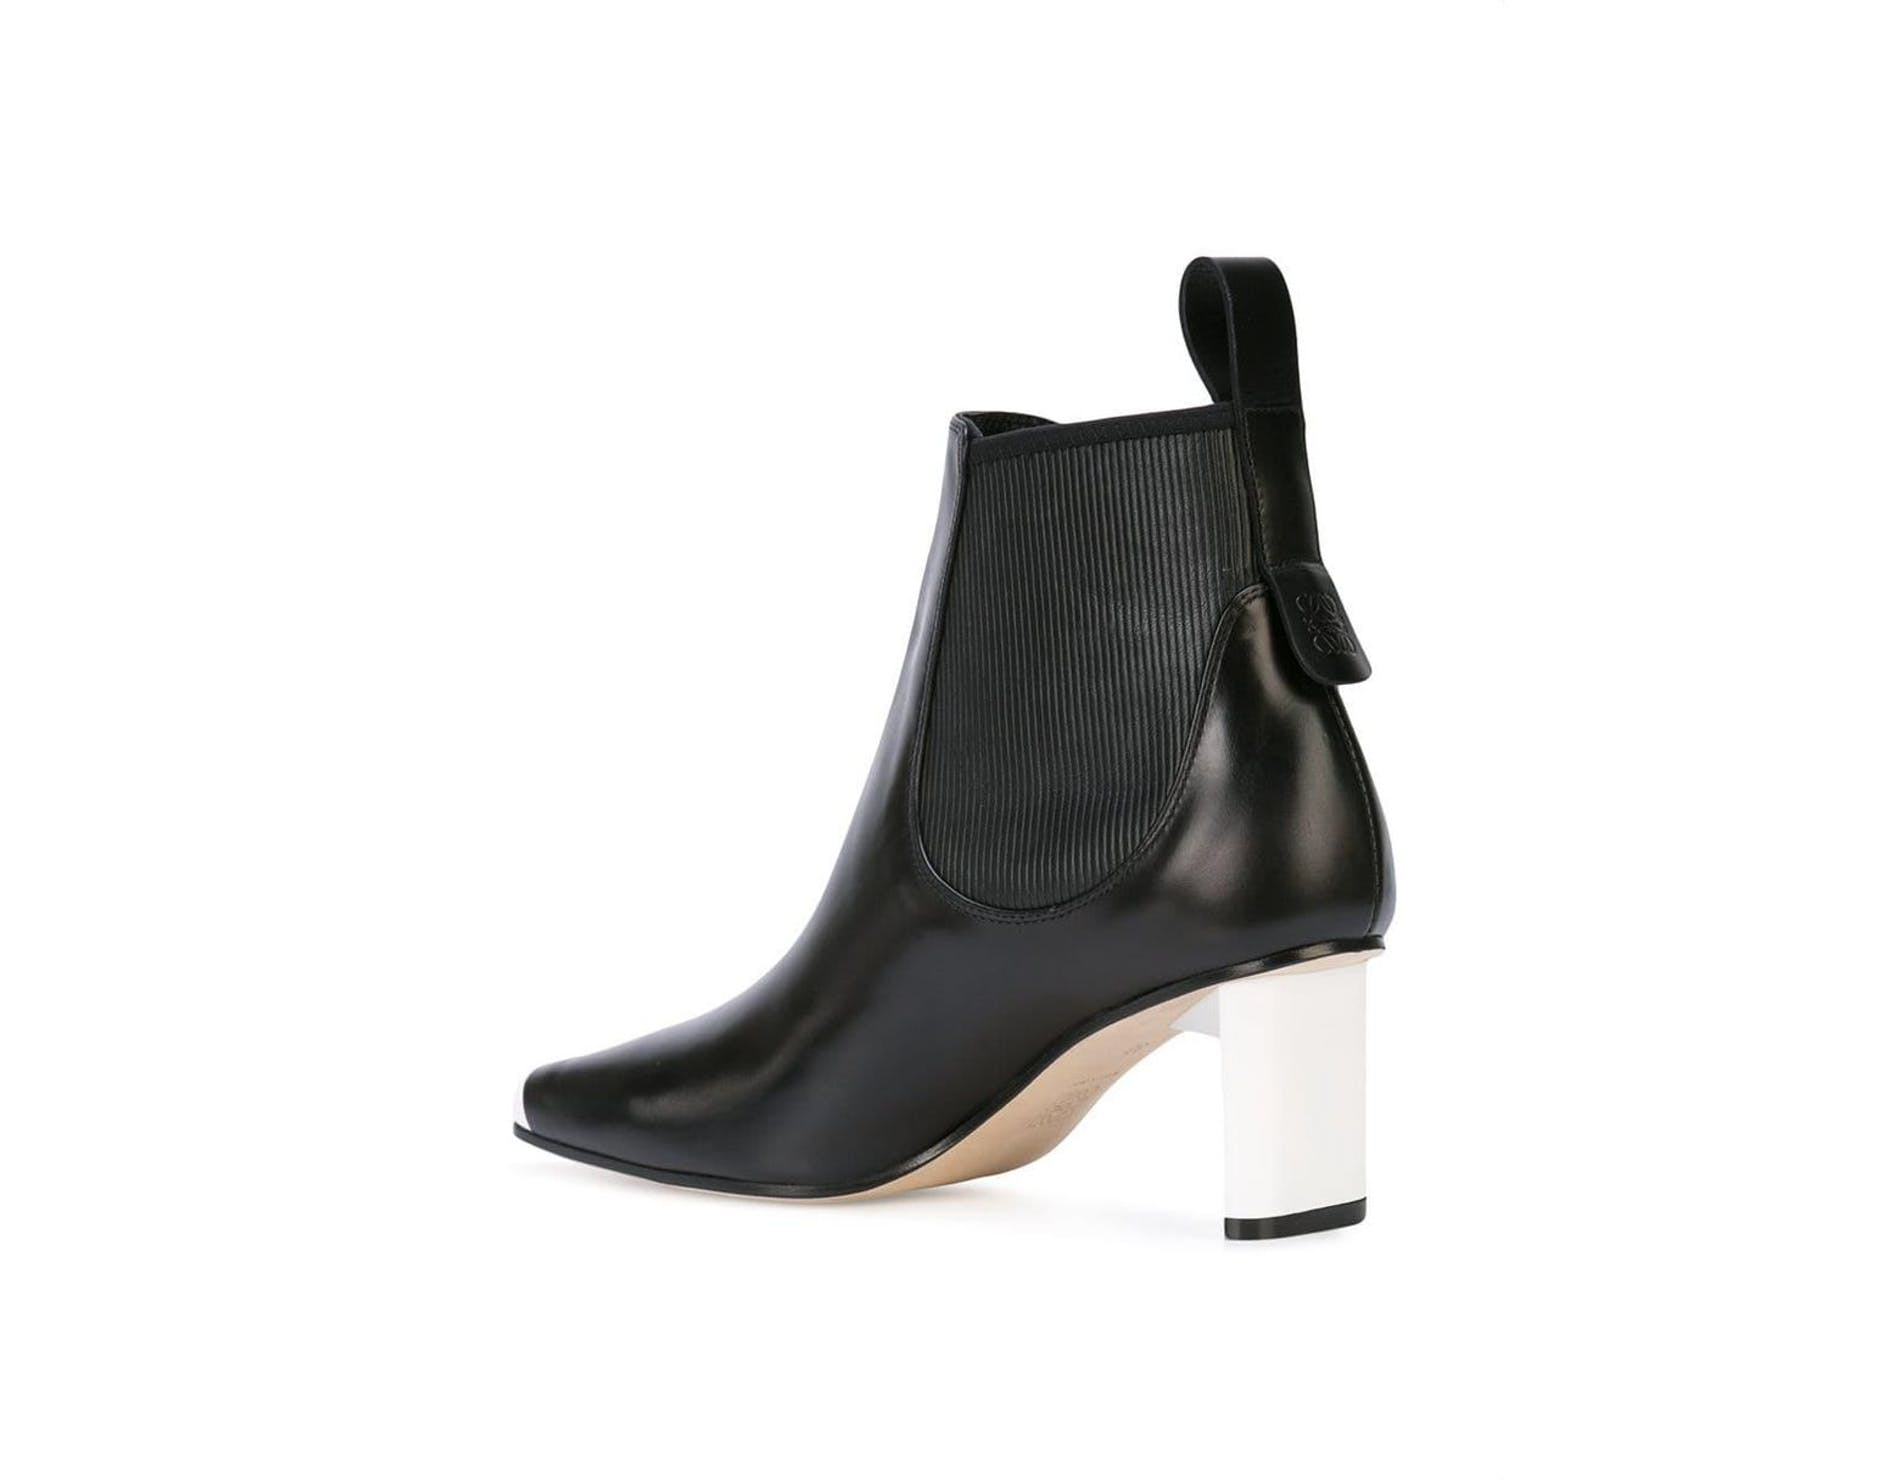 1564056084625236 loewe black square toe ankle boots